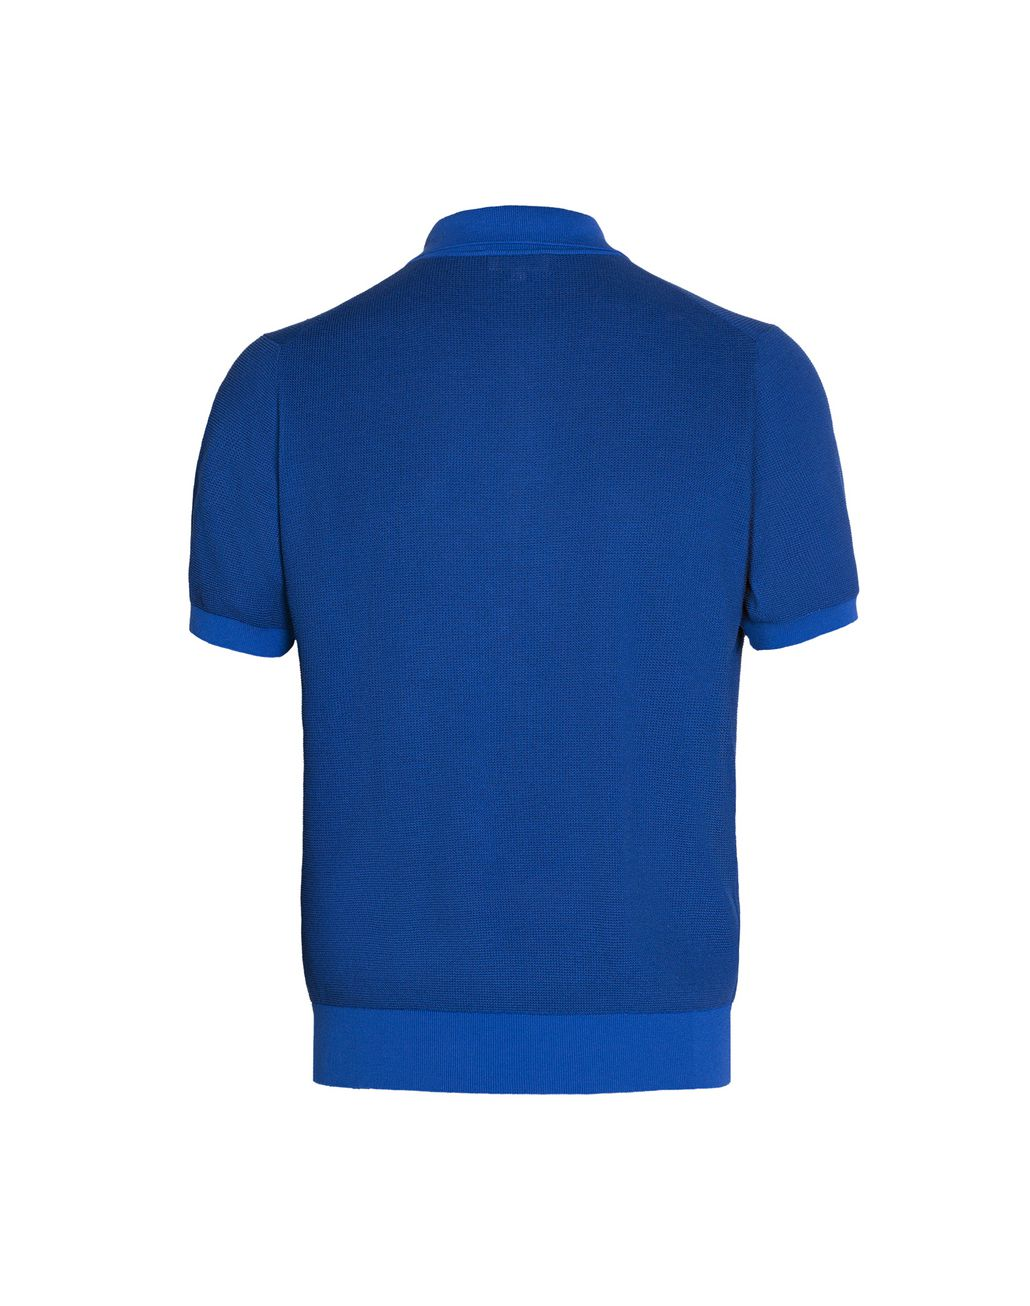 BRIONI Bluette Zipped Polo Shirt T-Shirts & Polos Man d